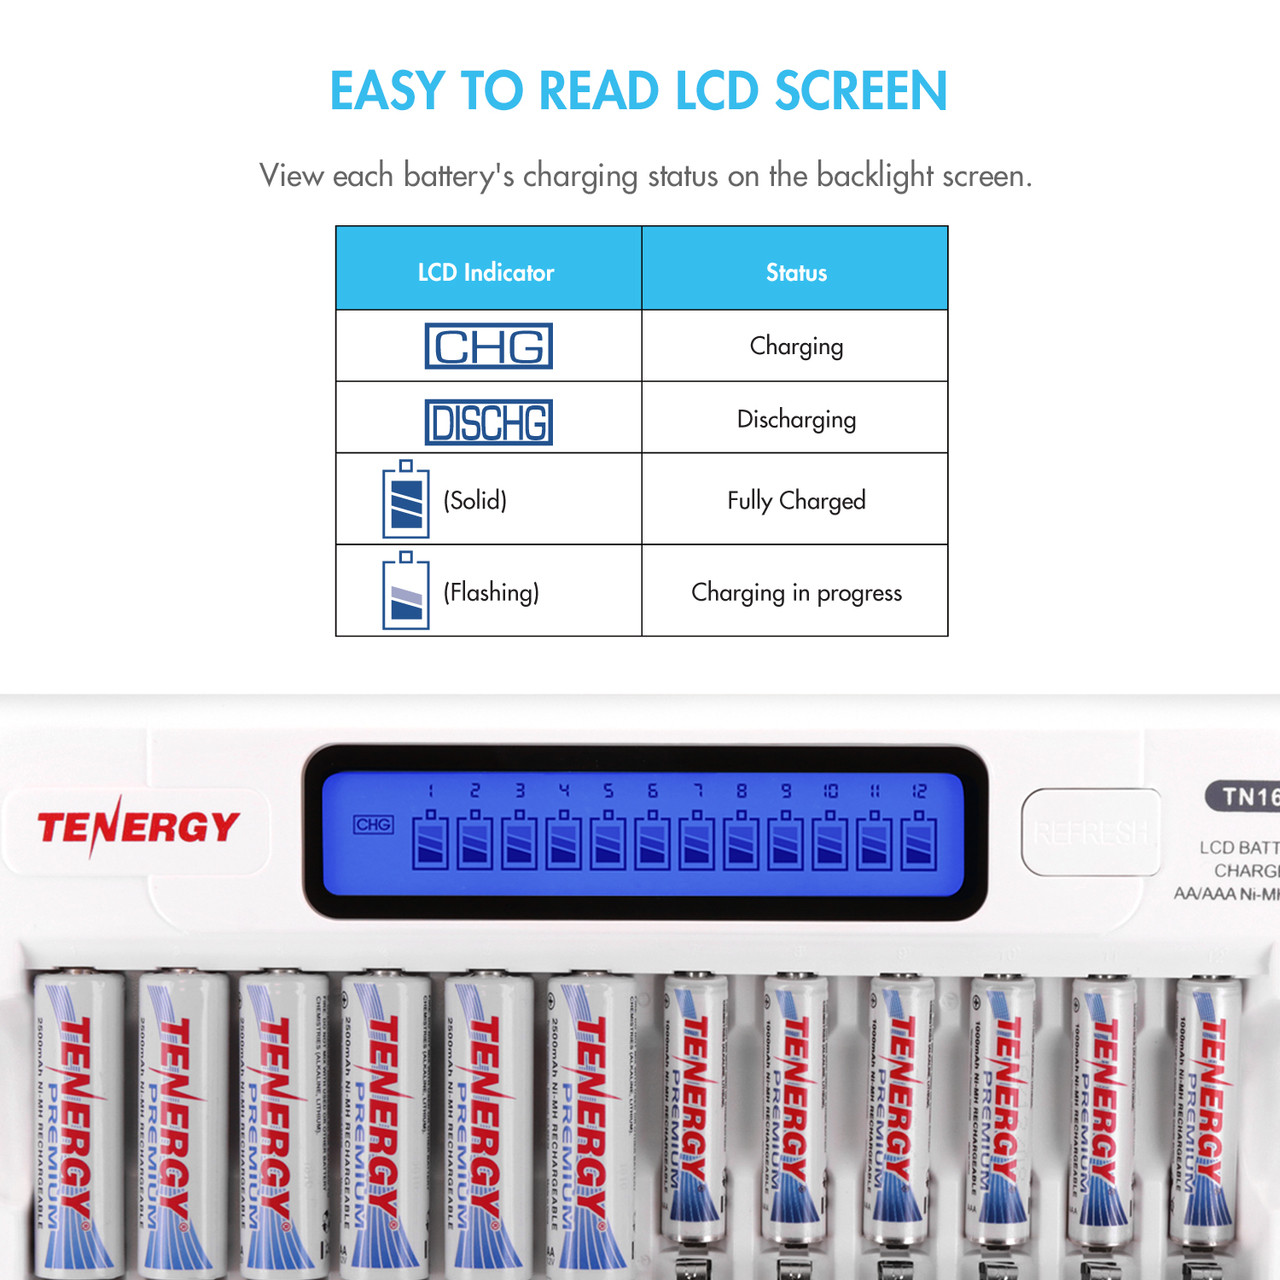 Tenergy TN160 12-Bay AA/AAA NiMH/NiCd LCD Smart Battery Charger